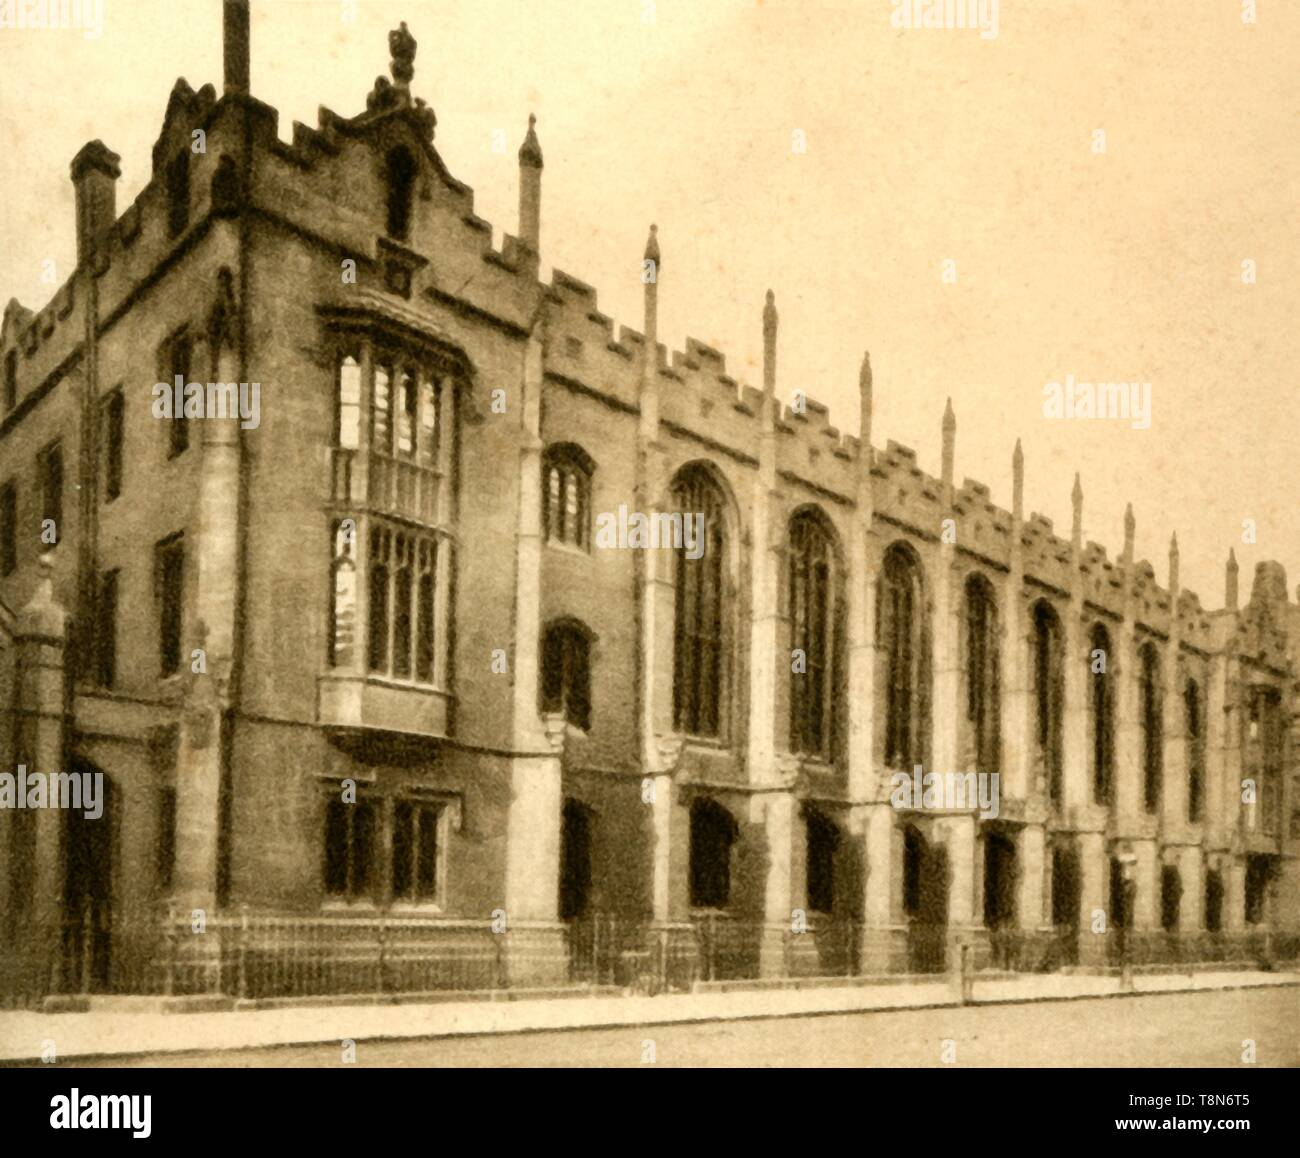 """'No. 61. King Edward's School, Birmingham, 1923.  Gothic architectural facade of New Street site designed by Charles Barry from 1835. King Edward's School, Birmingham is is an independent day school for boys in Edgbaston, founded by King Edward VI in 1552, From """"Sunripe Cigarettes - A Series of 75 Public Schools and Colleges"""". [R. & J. Hill Ltd, London, 1923] - Stock Image"""